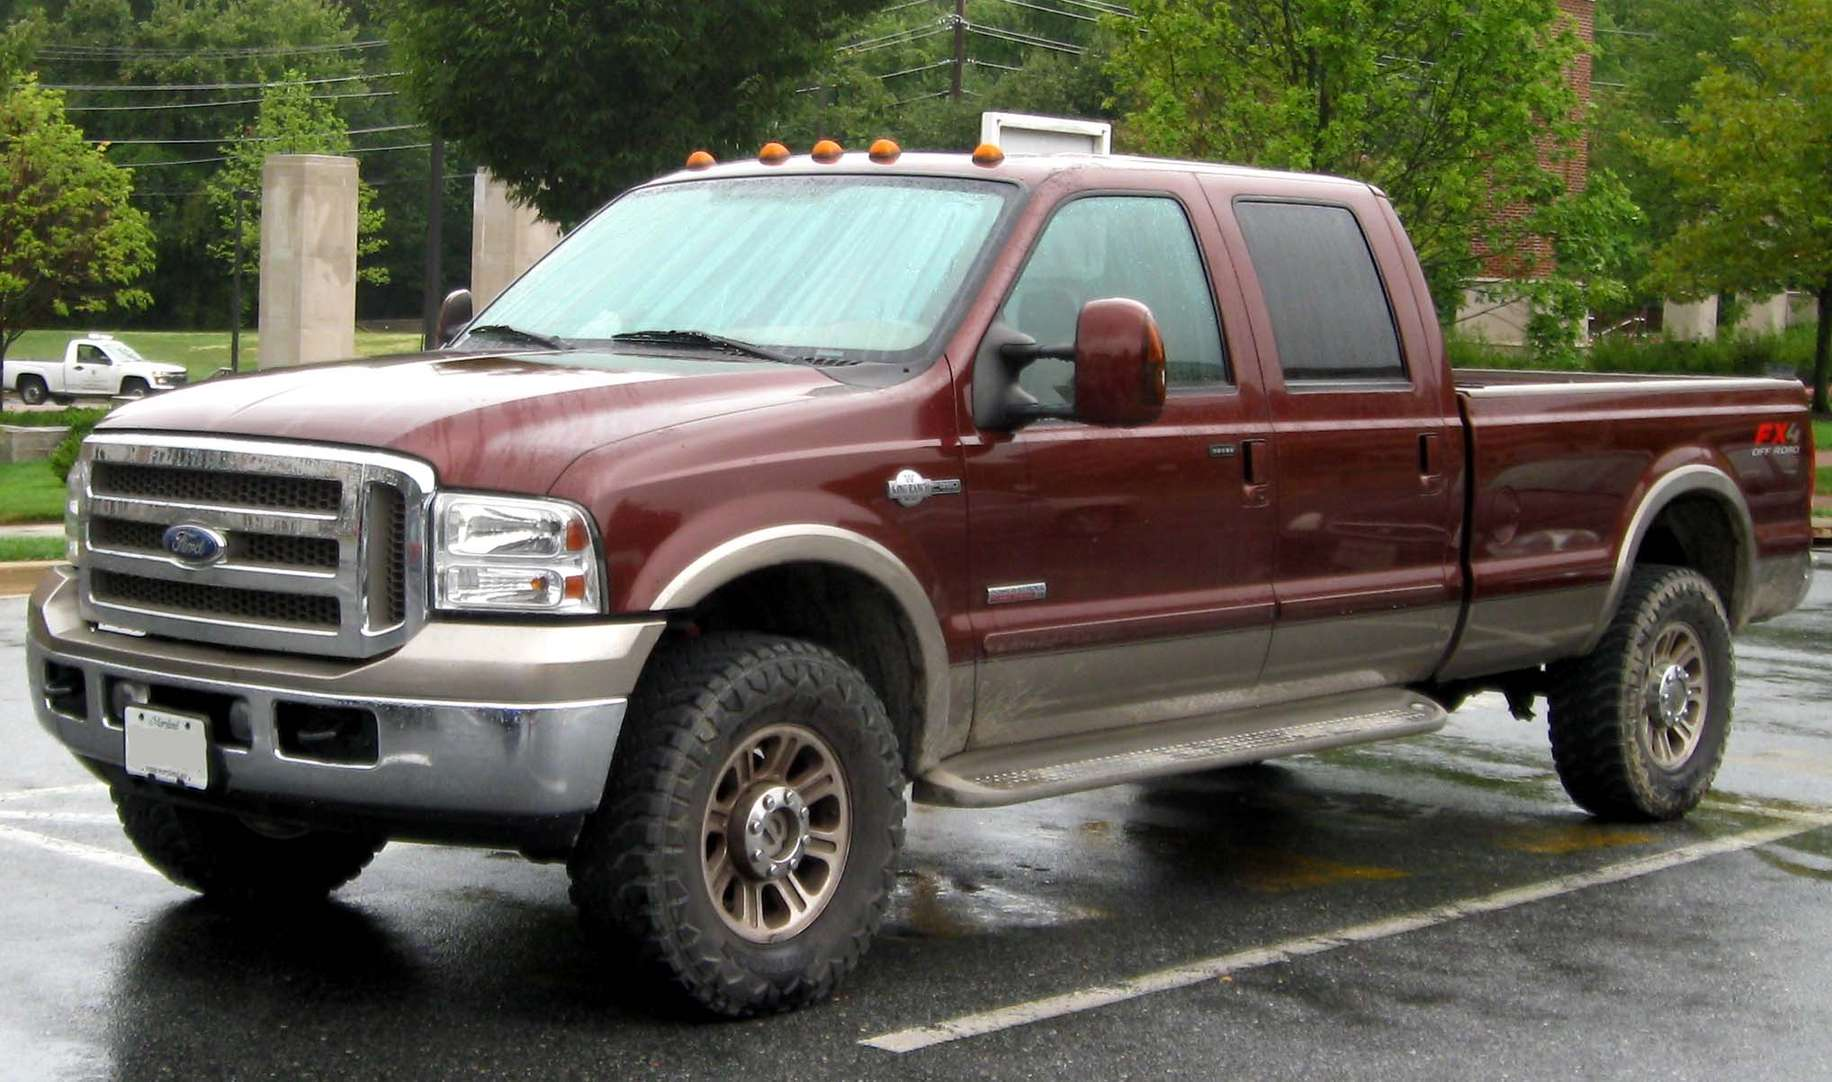 Ford F-350 #8303724